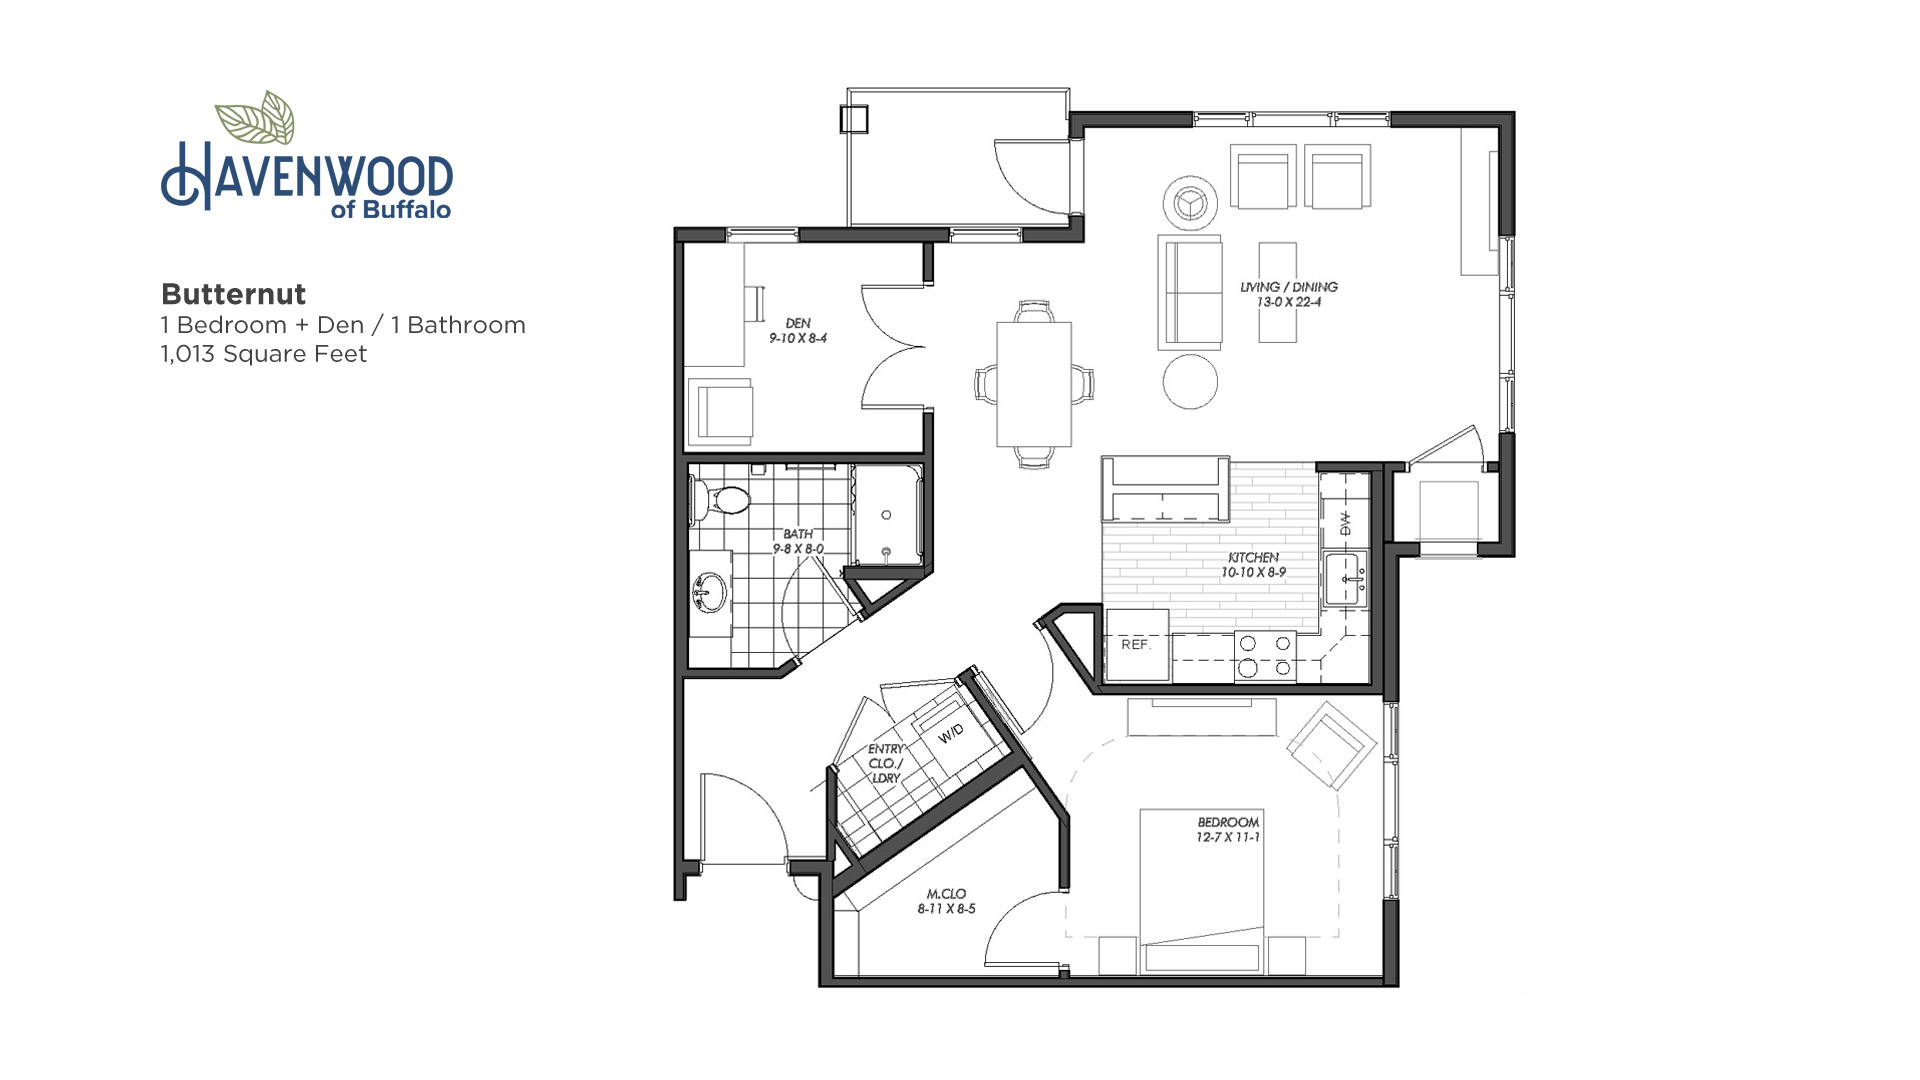 Havenwood of Buffalo Butternut Floor Plan